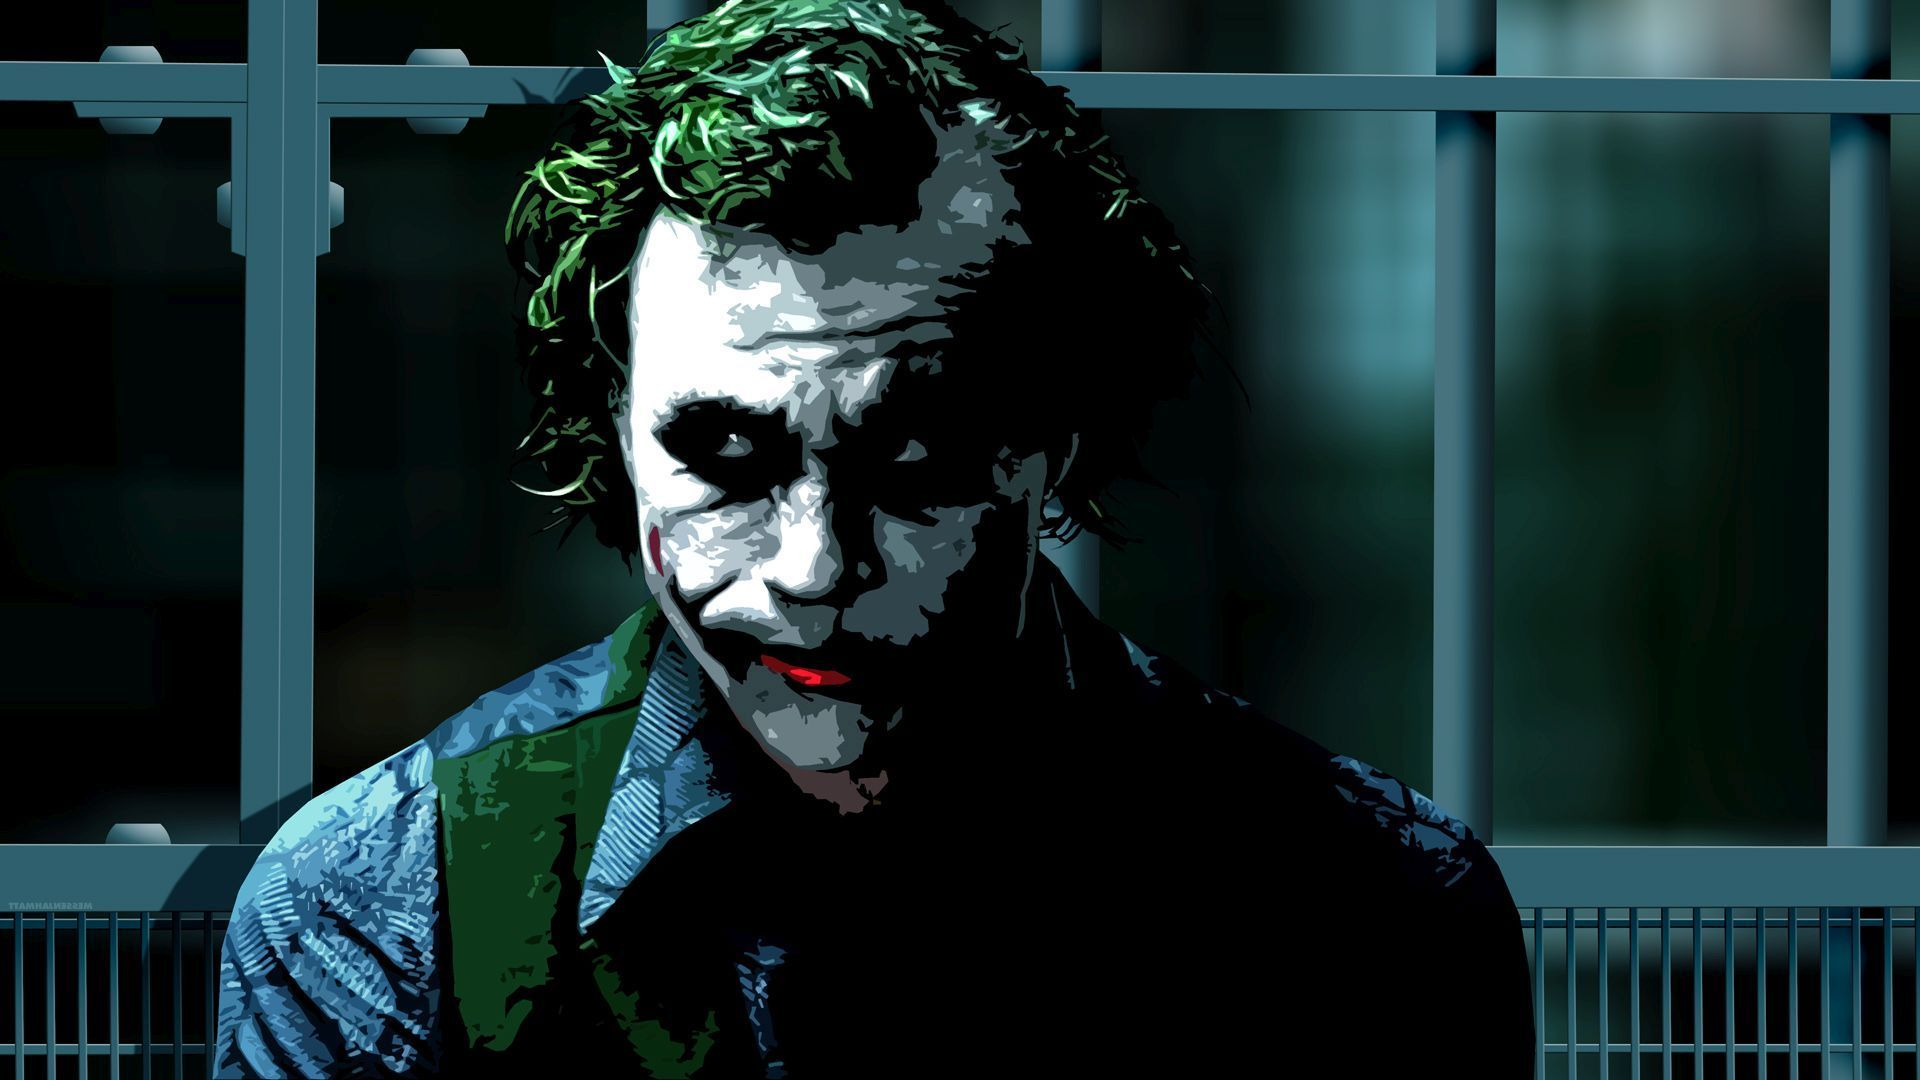 The Joker The Dark Knight Wallpaper Joker Wallpapers Joker Hd Wallpaper Dark Knight Wallpaper